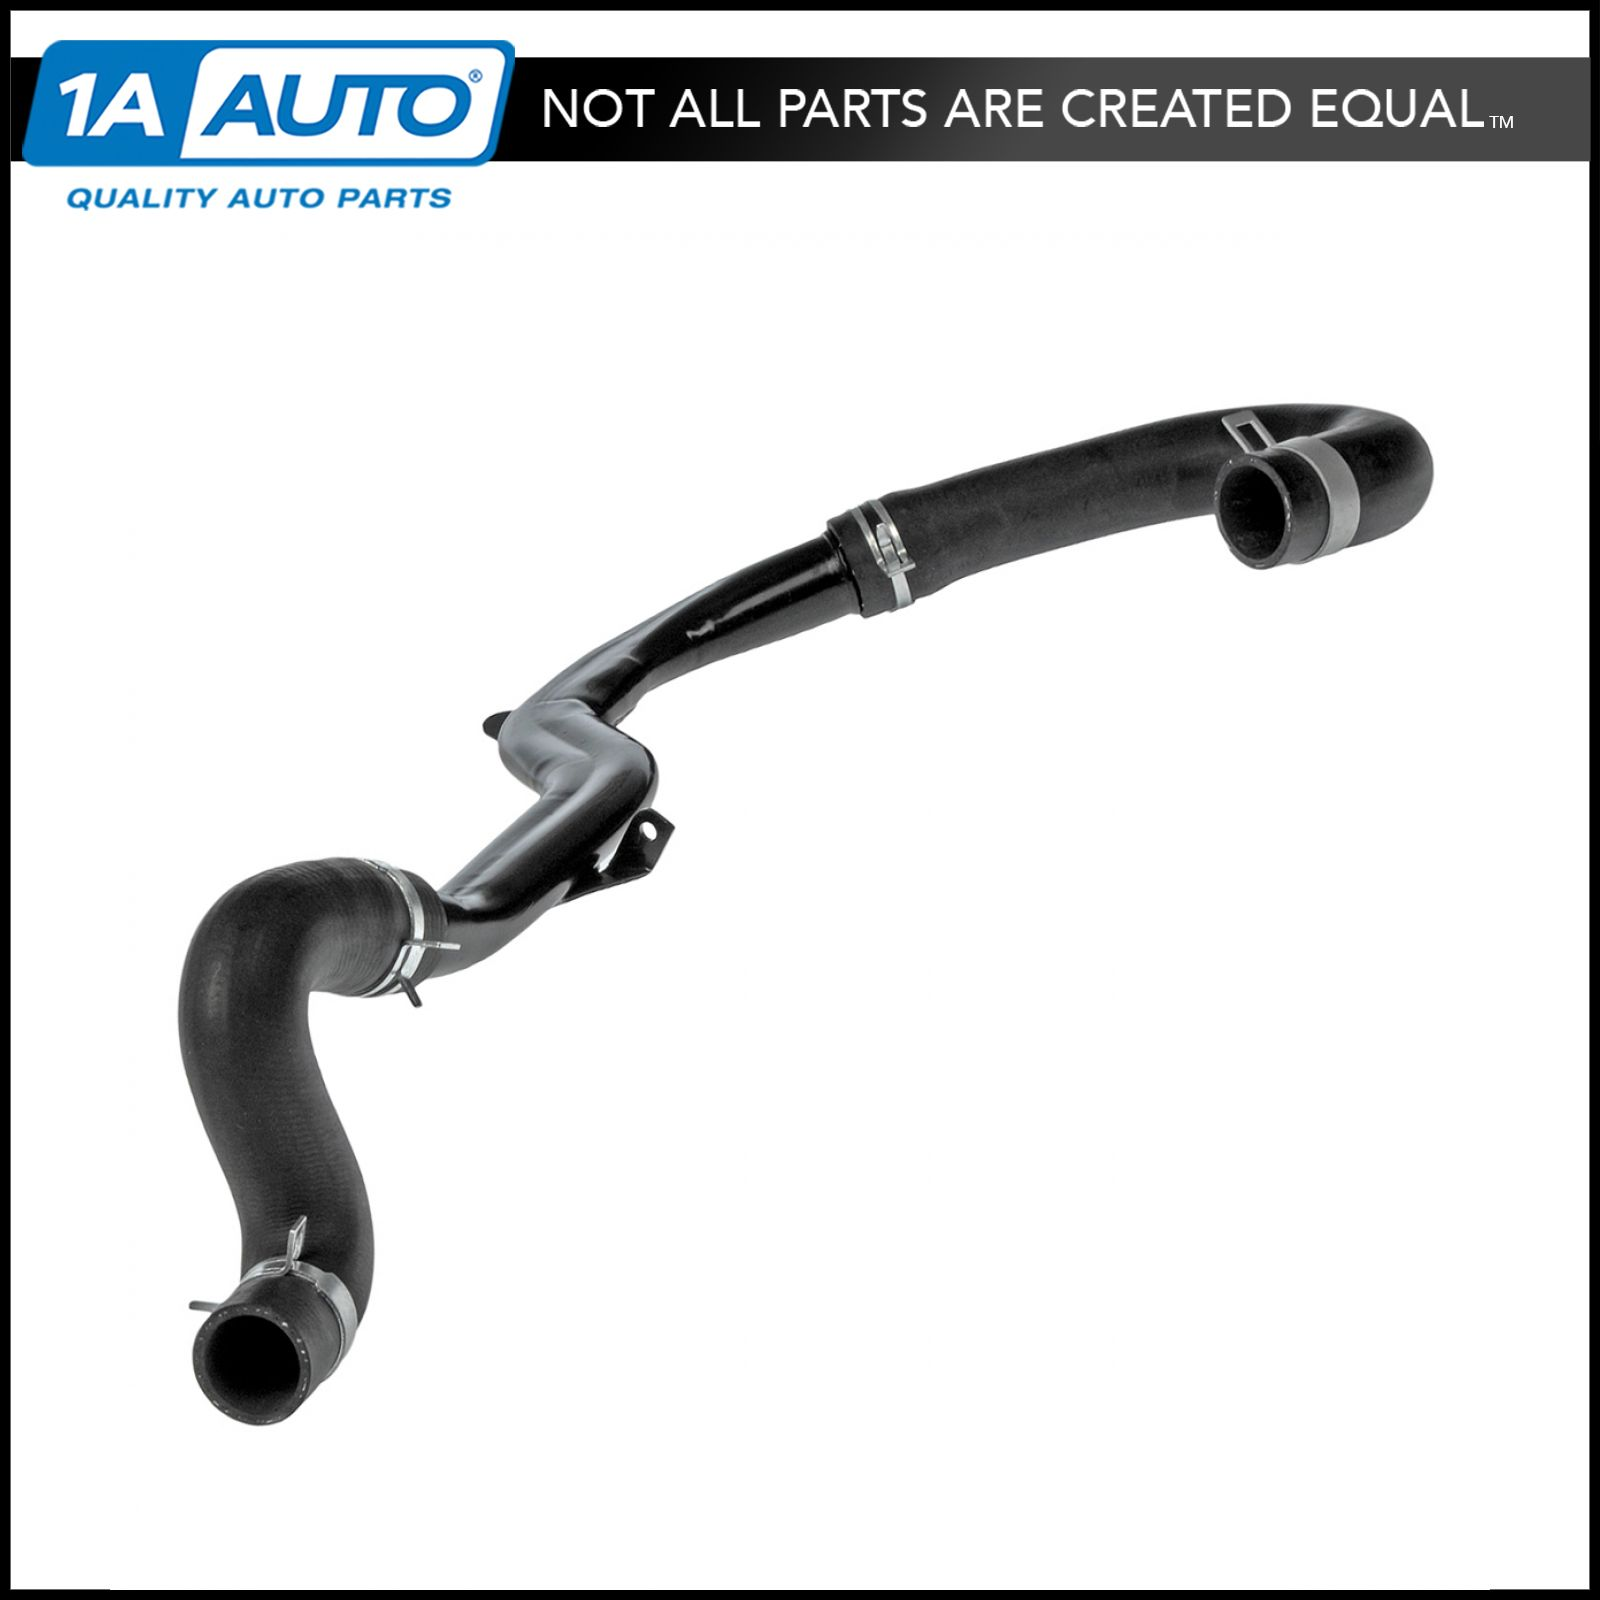 Lower Radiator Hose >> Details About Dorman Lower Radiator Hose Assembly Ys4z8286ca For 00 07 Ford Focus 2 0l Sohc